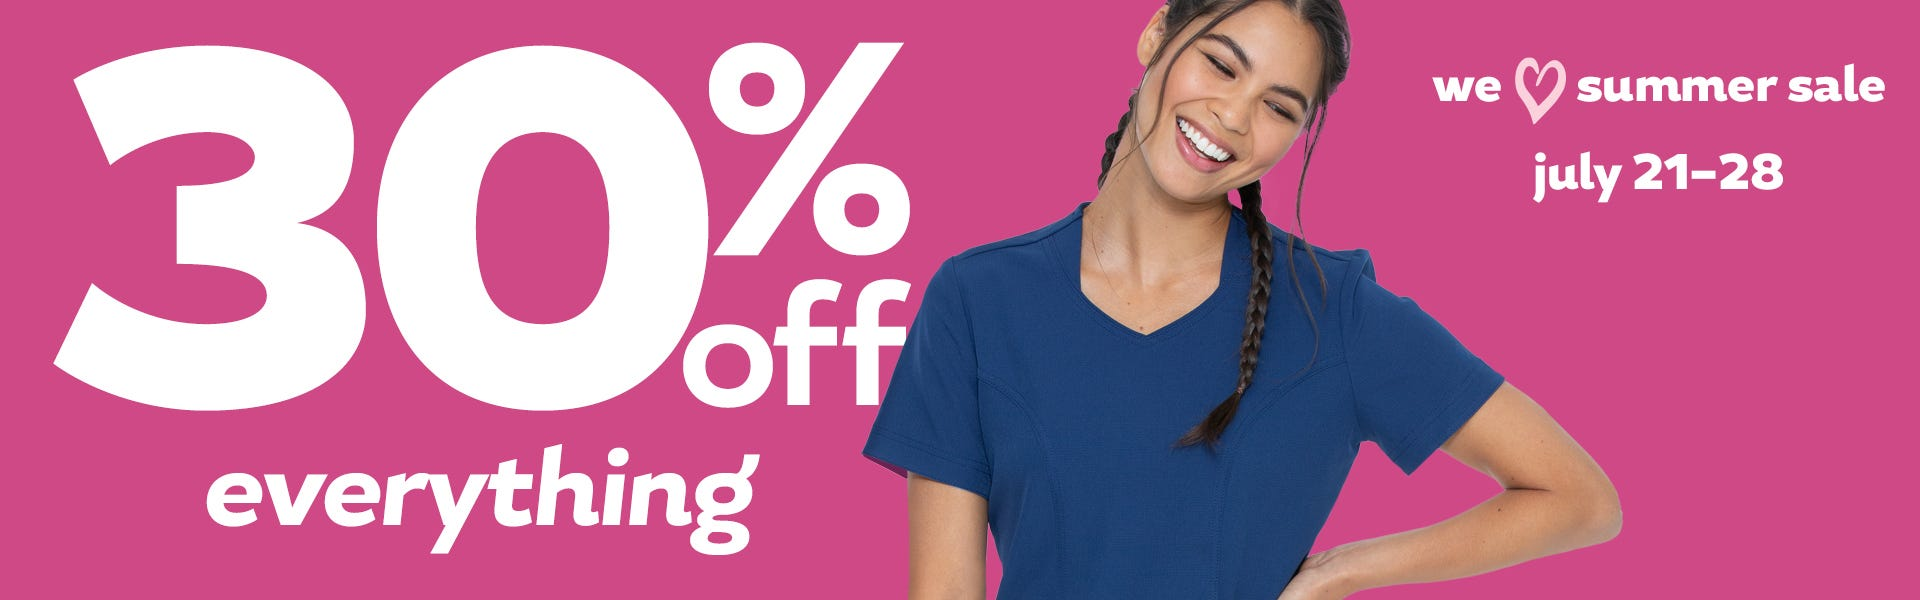 30% OFF everything, July 21-28.